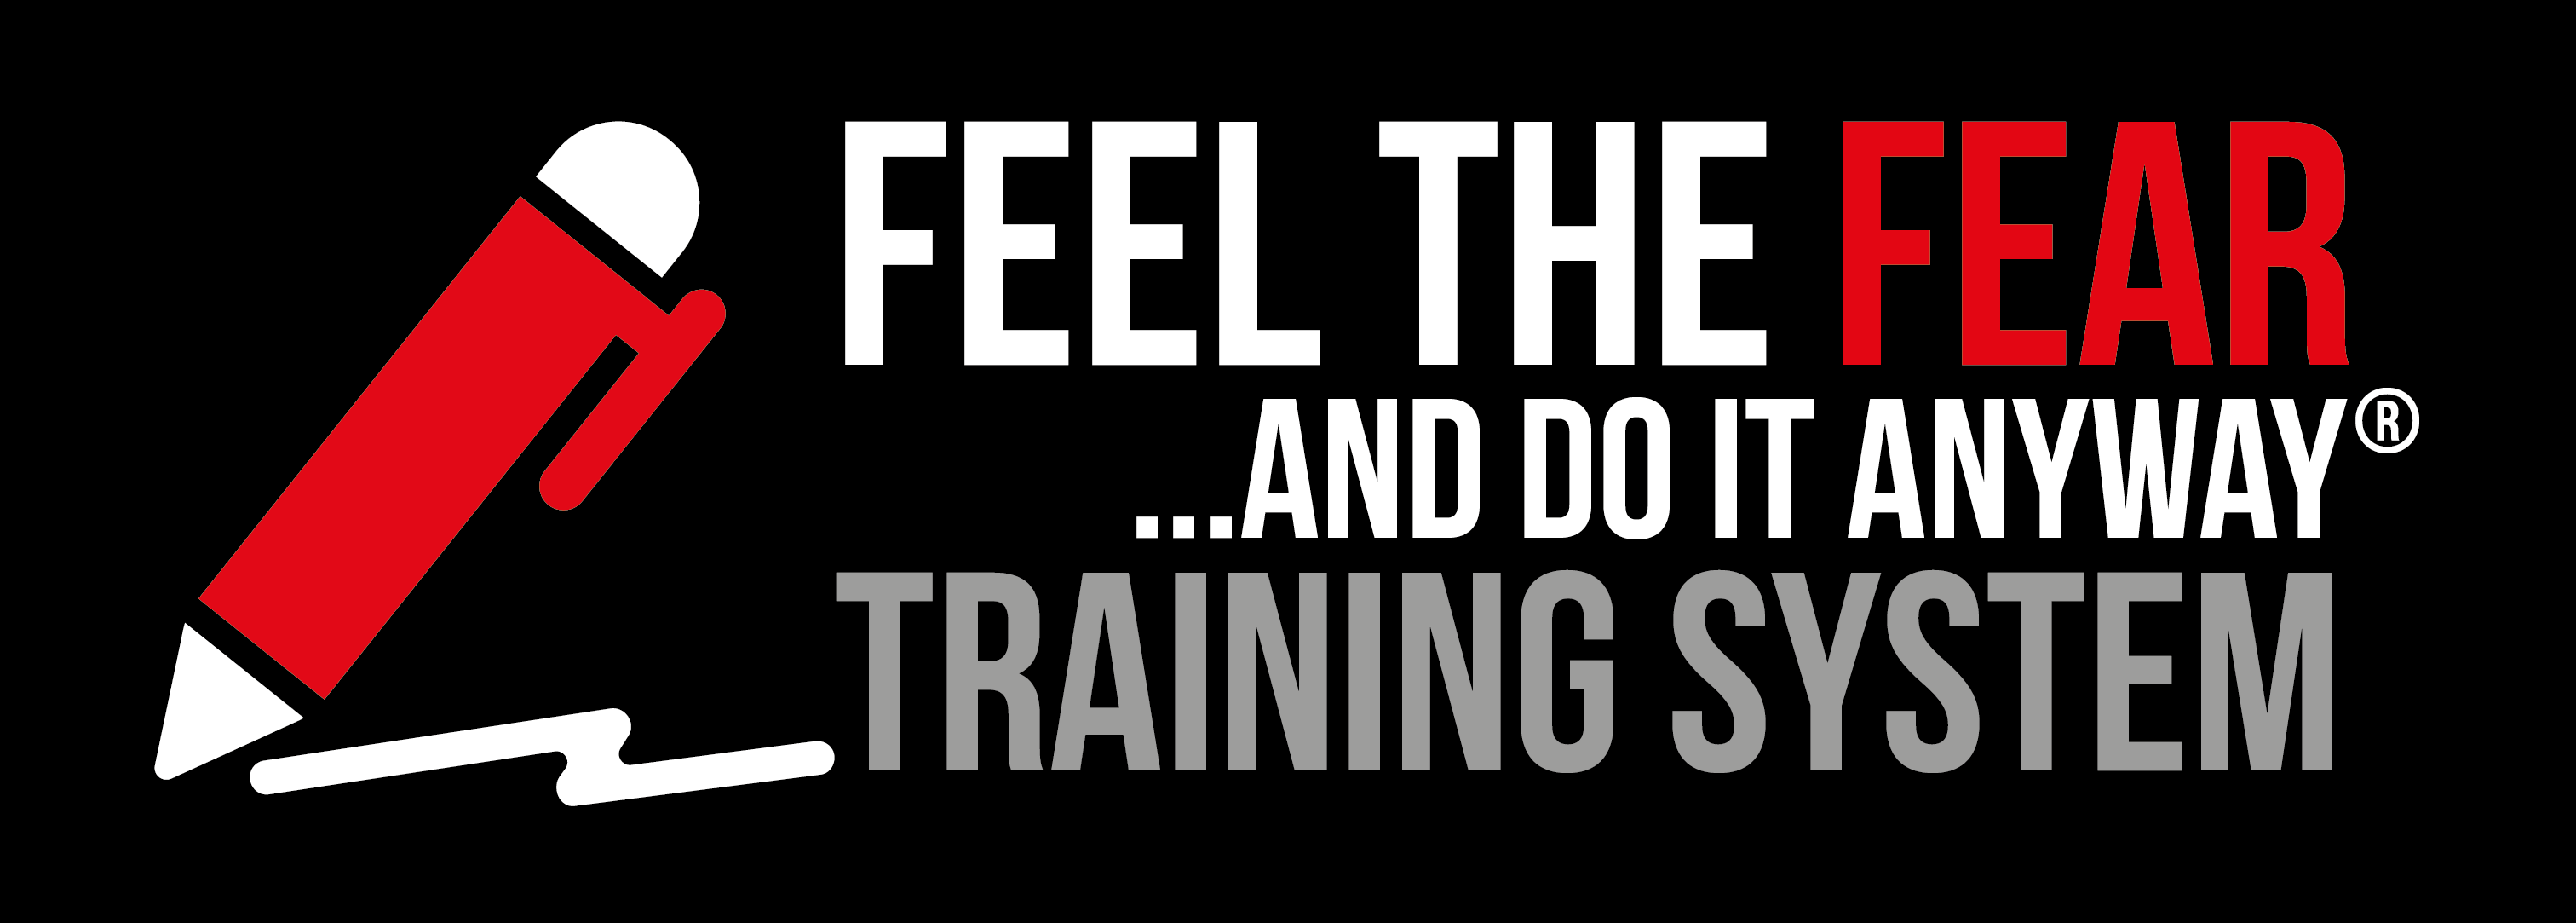 Feel The Fear Training